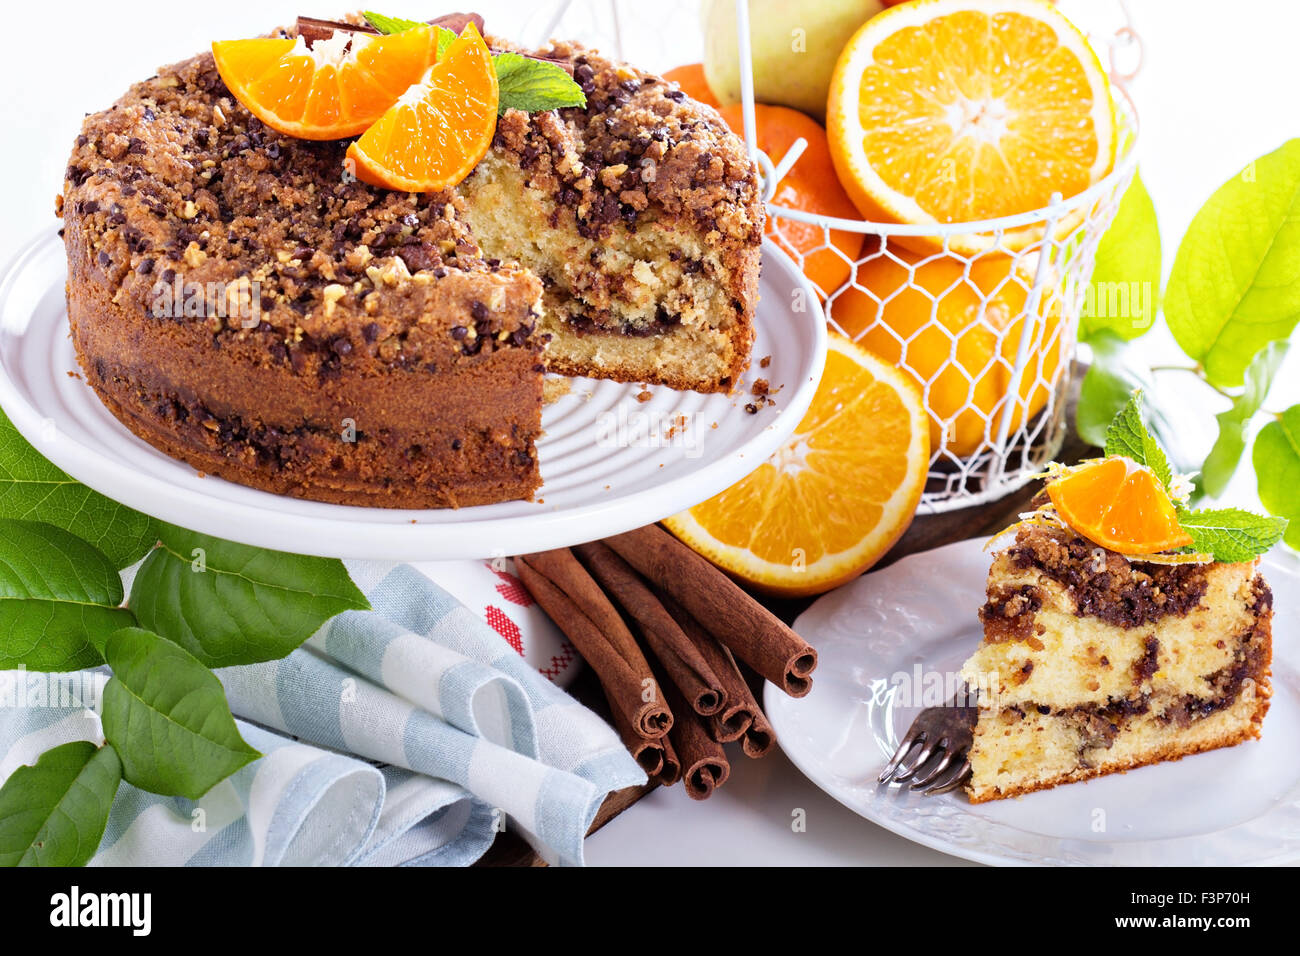 Coffee cake with oranges, nuts and chocolate with crumble topping - Stock Image